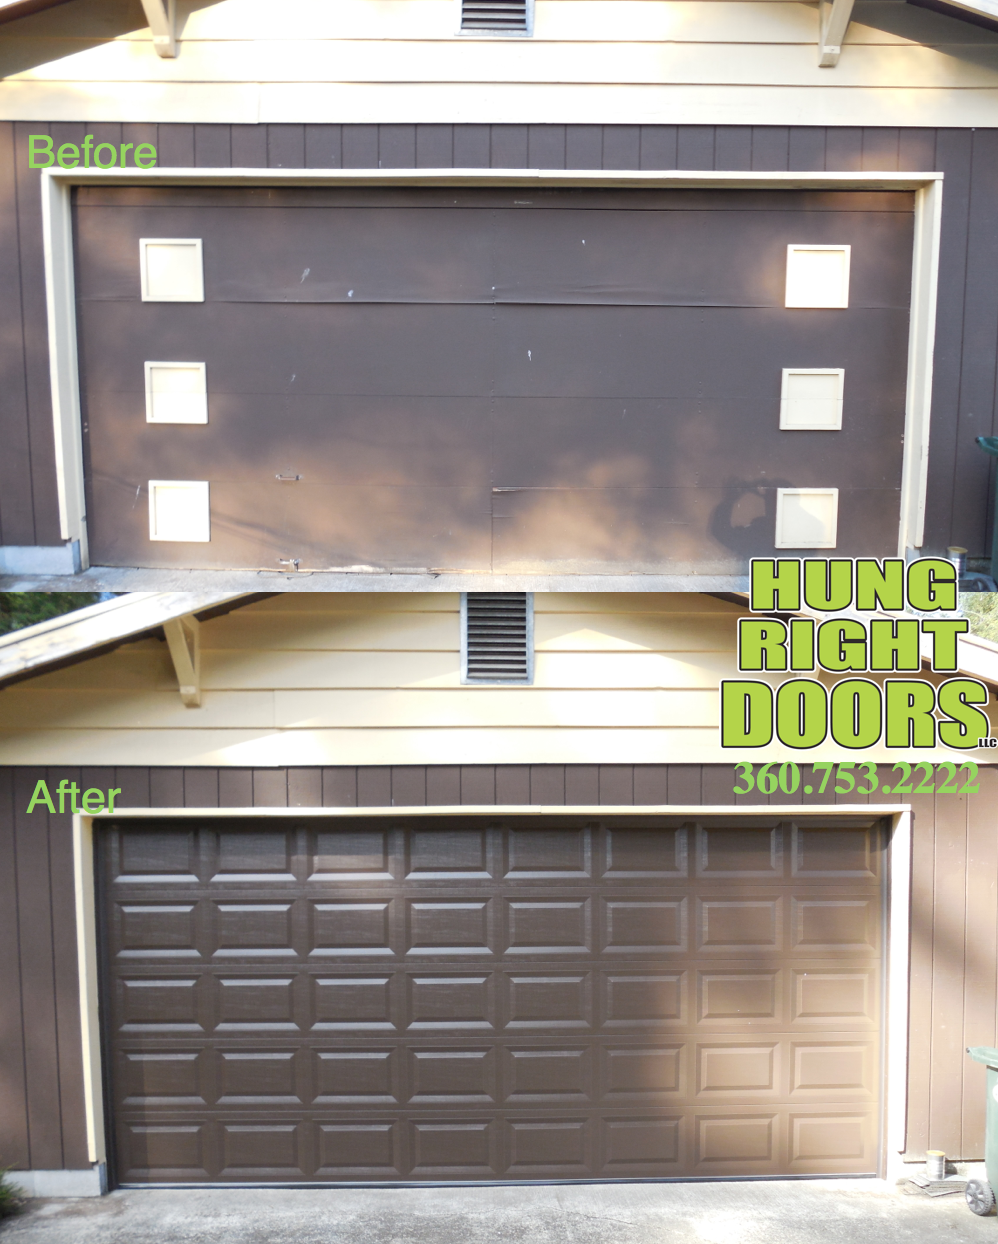 Carriage garage doors without windows  Updating your home is awesome hungrightdoorsllc Clopay